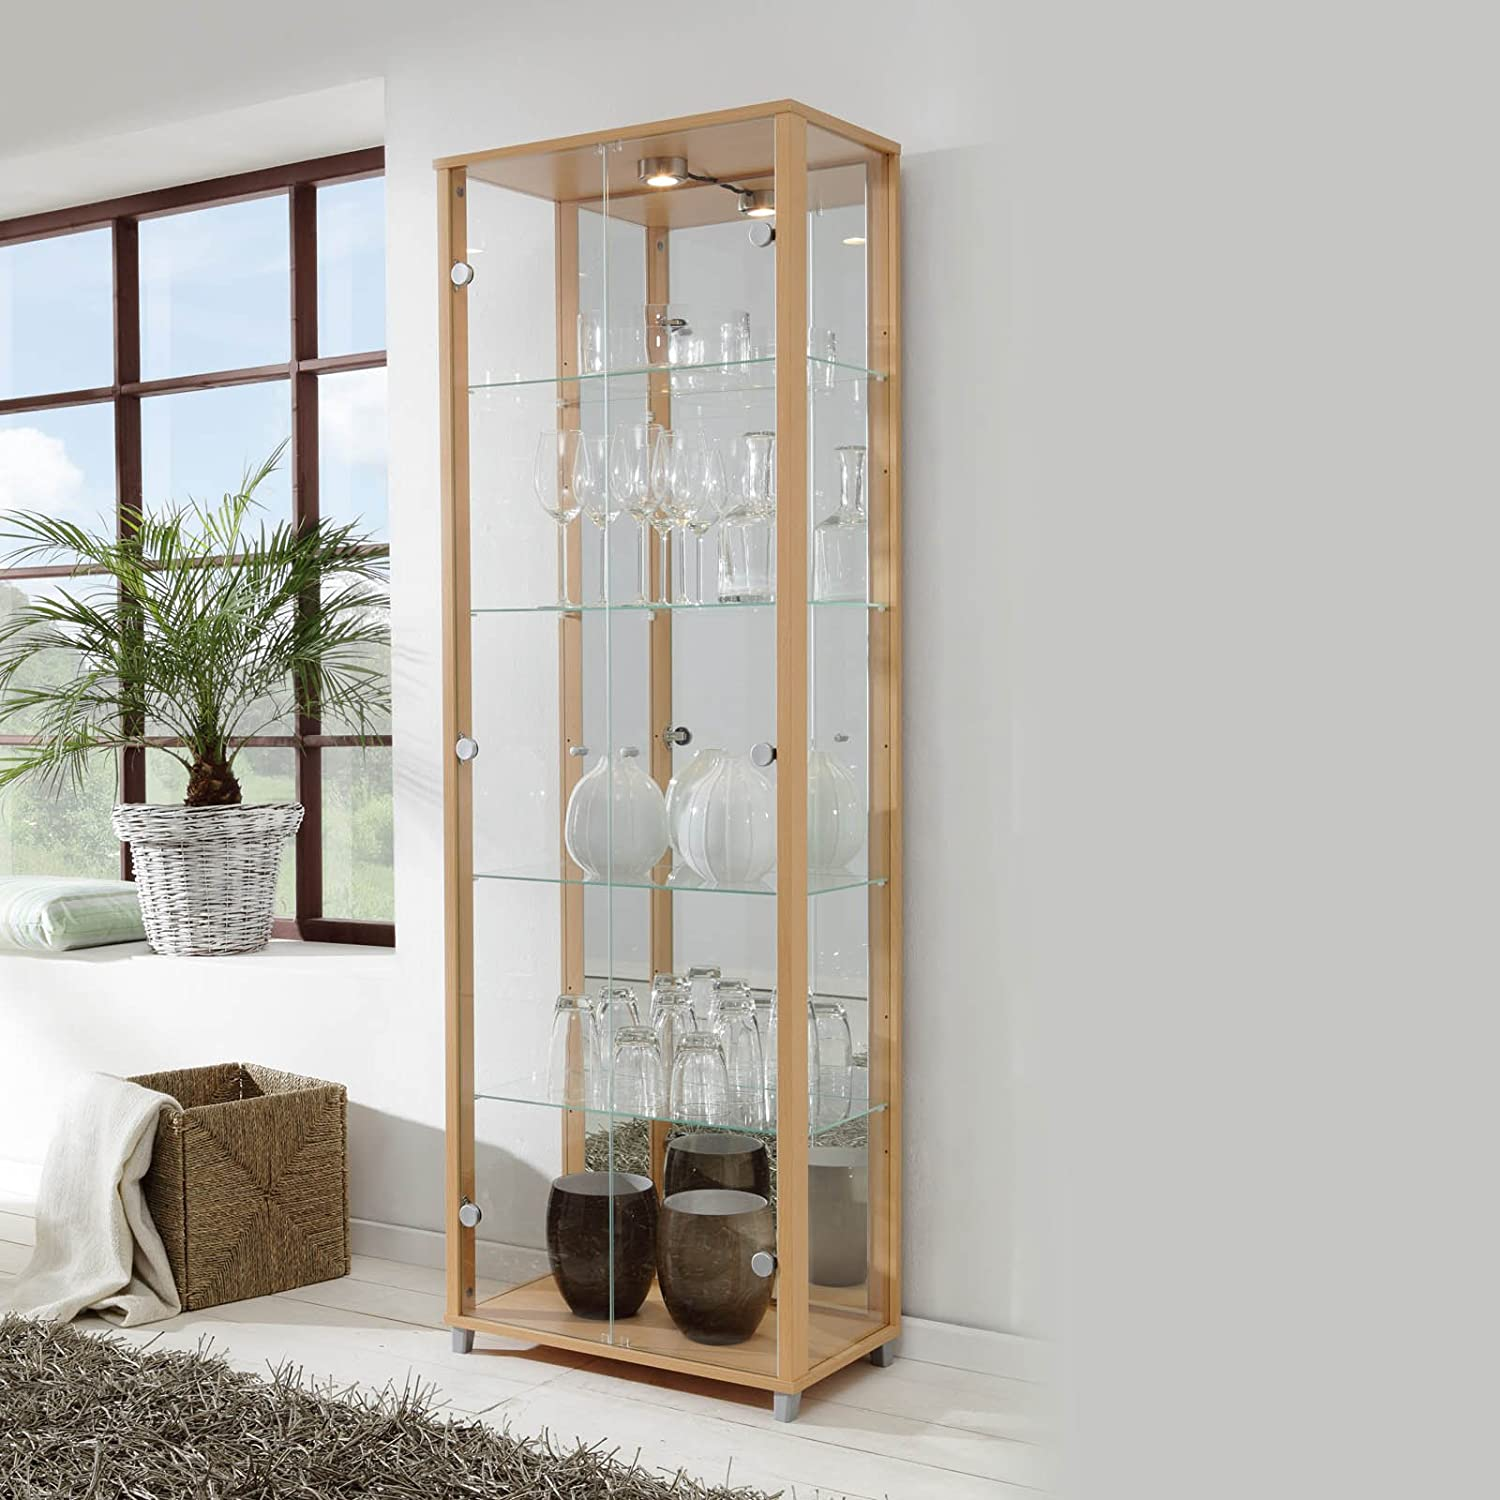 Mirror Back 7 Glass Shelves LOCKABLE Fully Assembled HOME Beech Double Glass Display Cabinet Spotlight